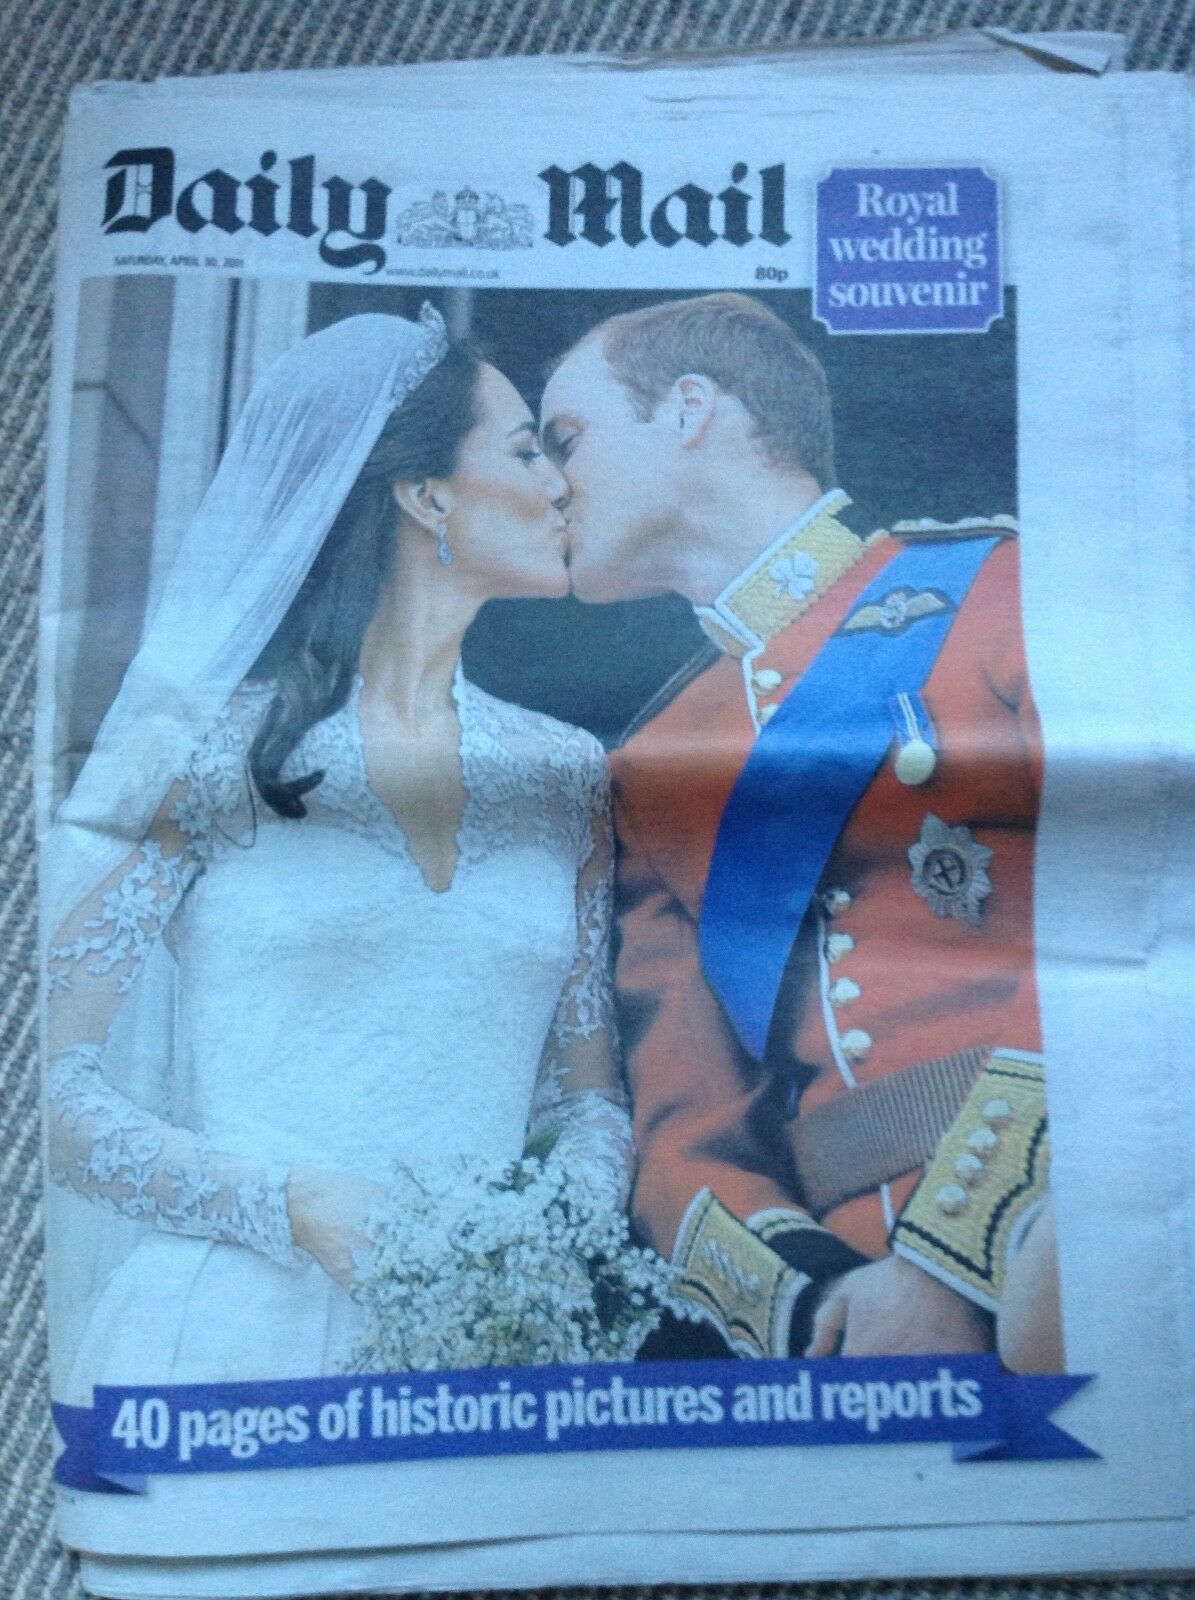 The Daily Mail newspaper from 30th Apr 2011 - Royal Wedding issue